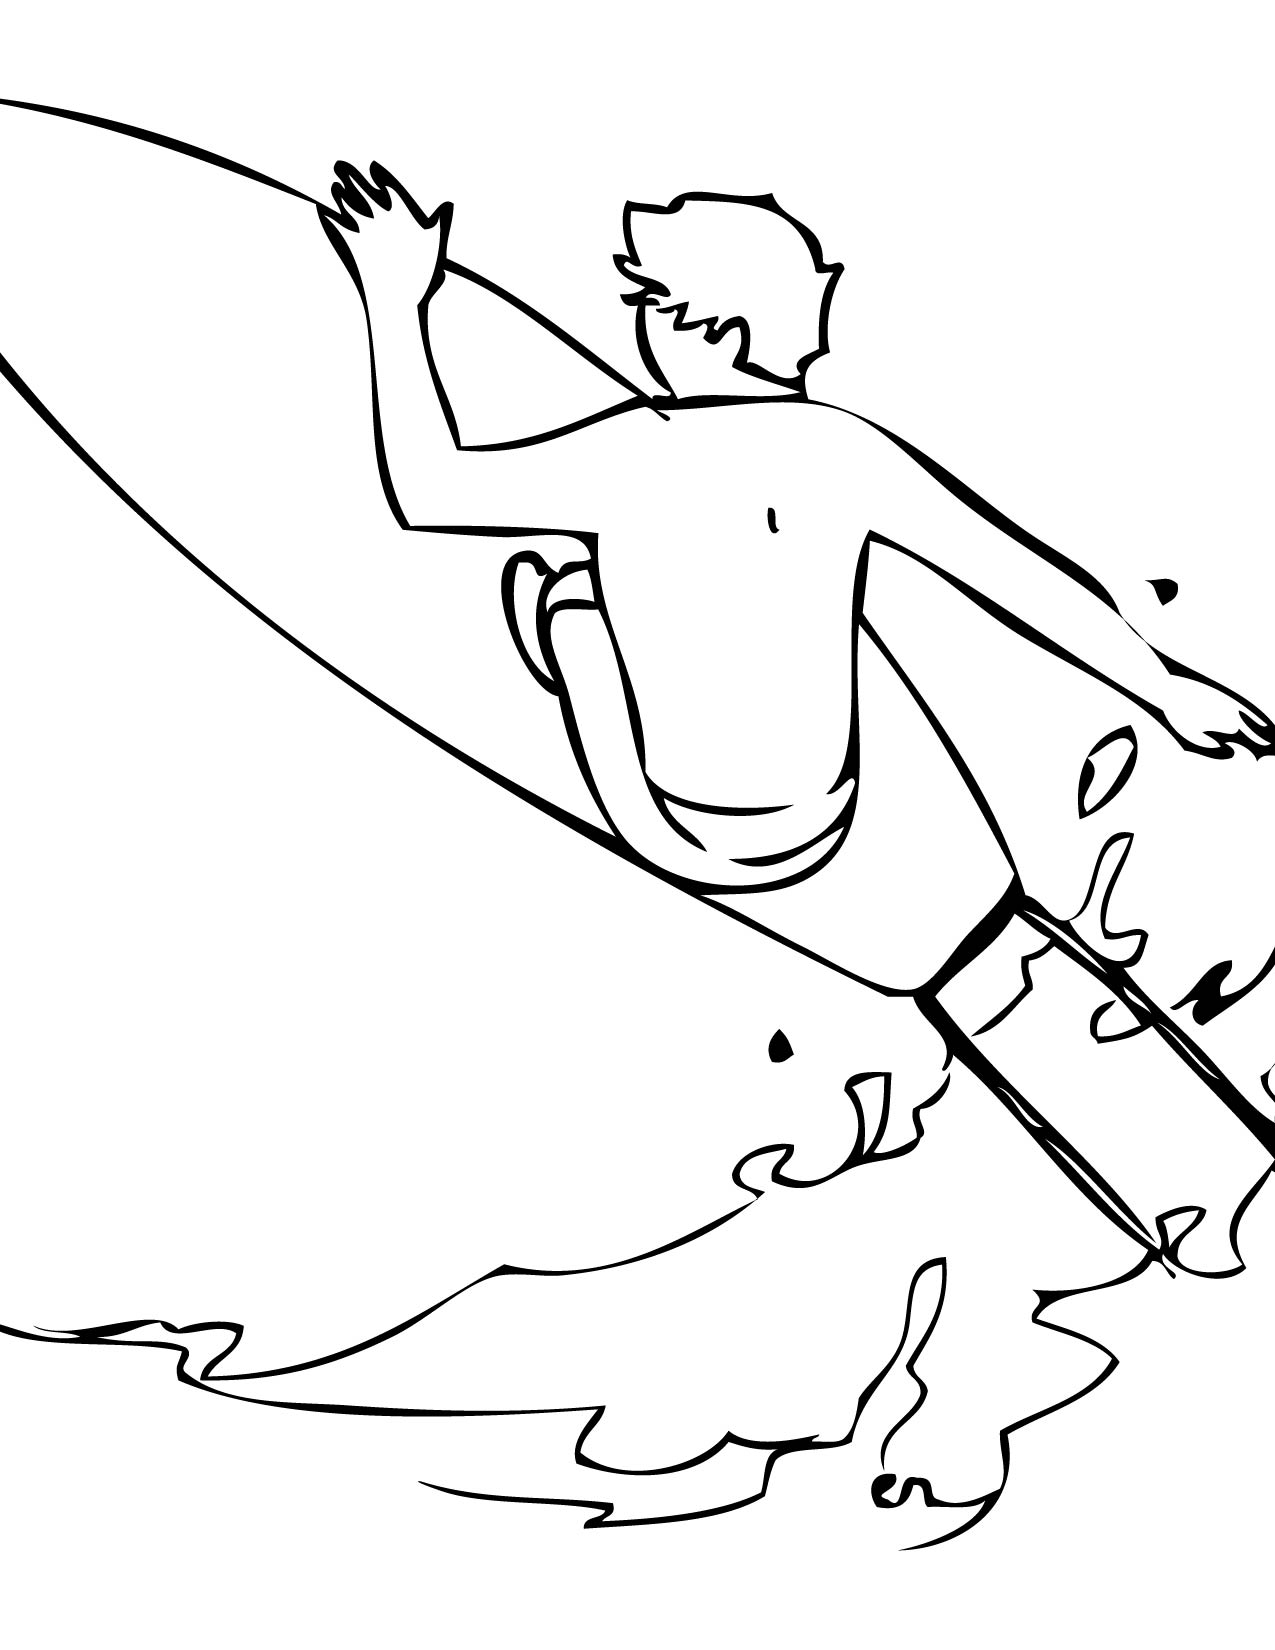 1275x1650 Surfing Coloring Page